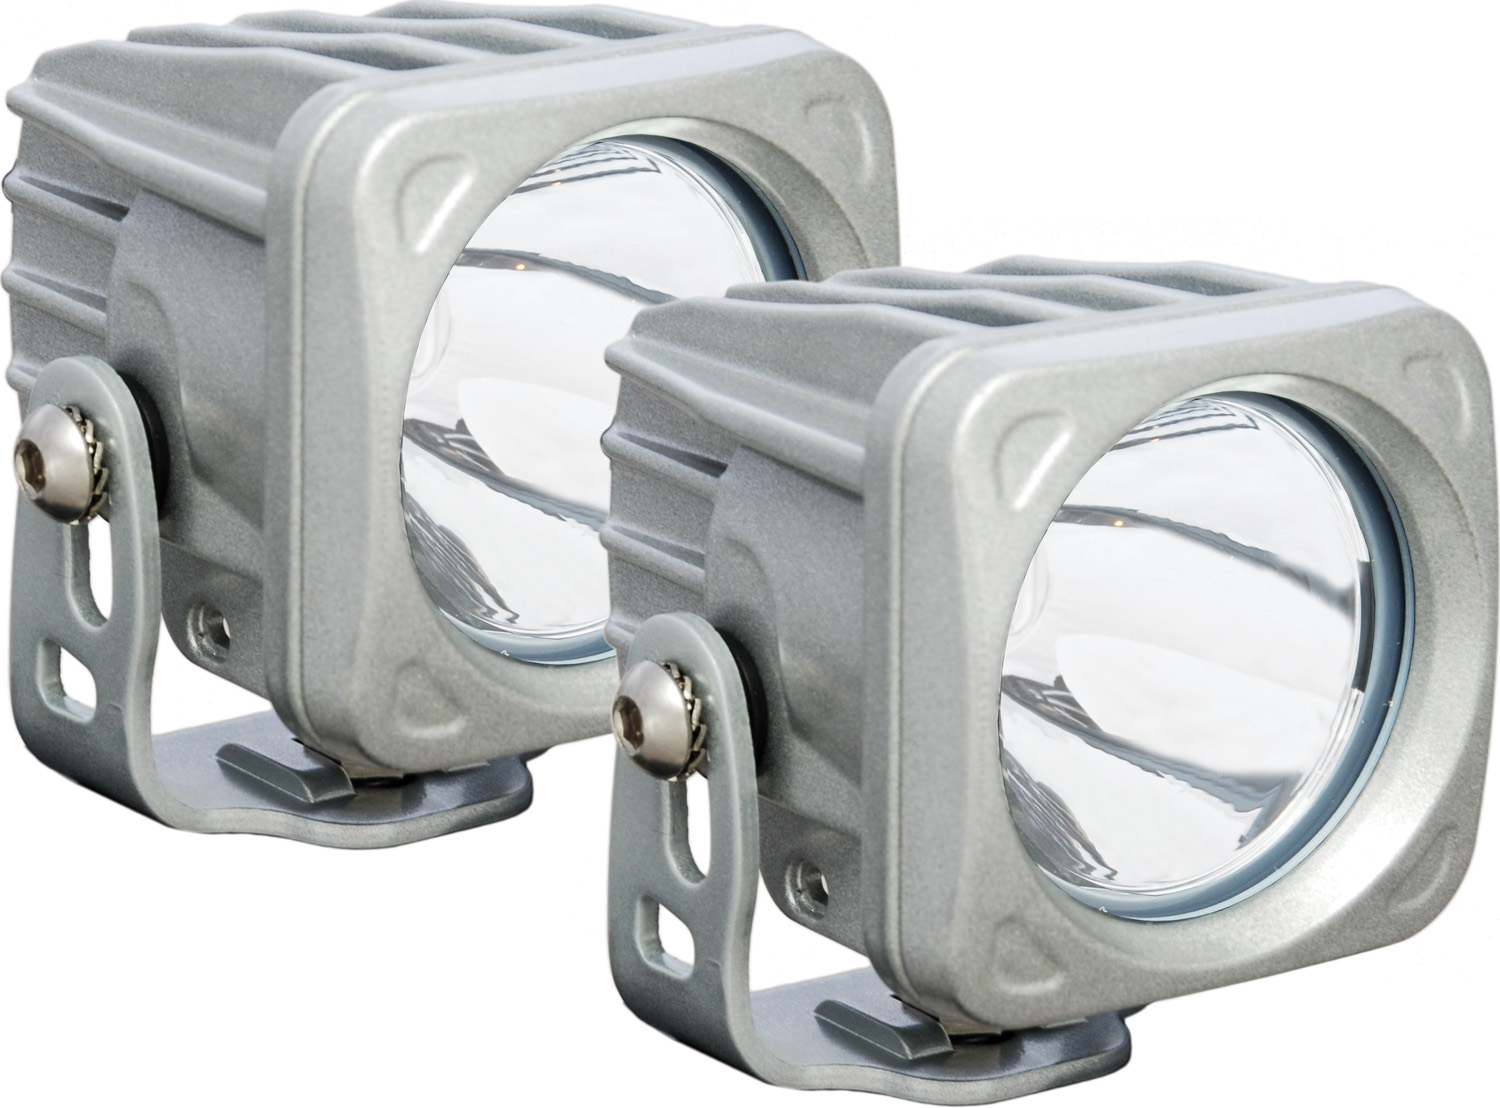 OPTIMUS SQUARE SILVER 1 10W LED 10° NARROW KIT OF 2 LIGHTS